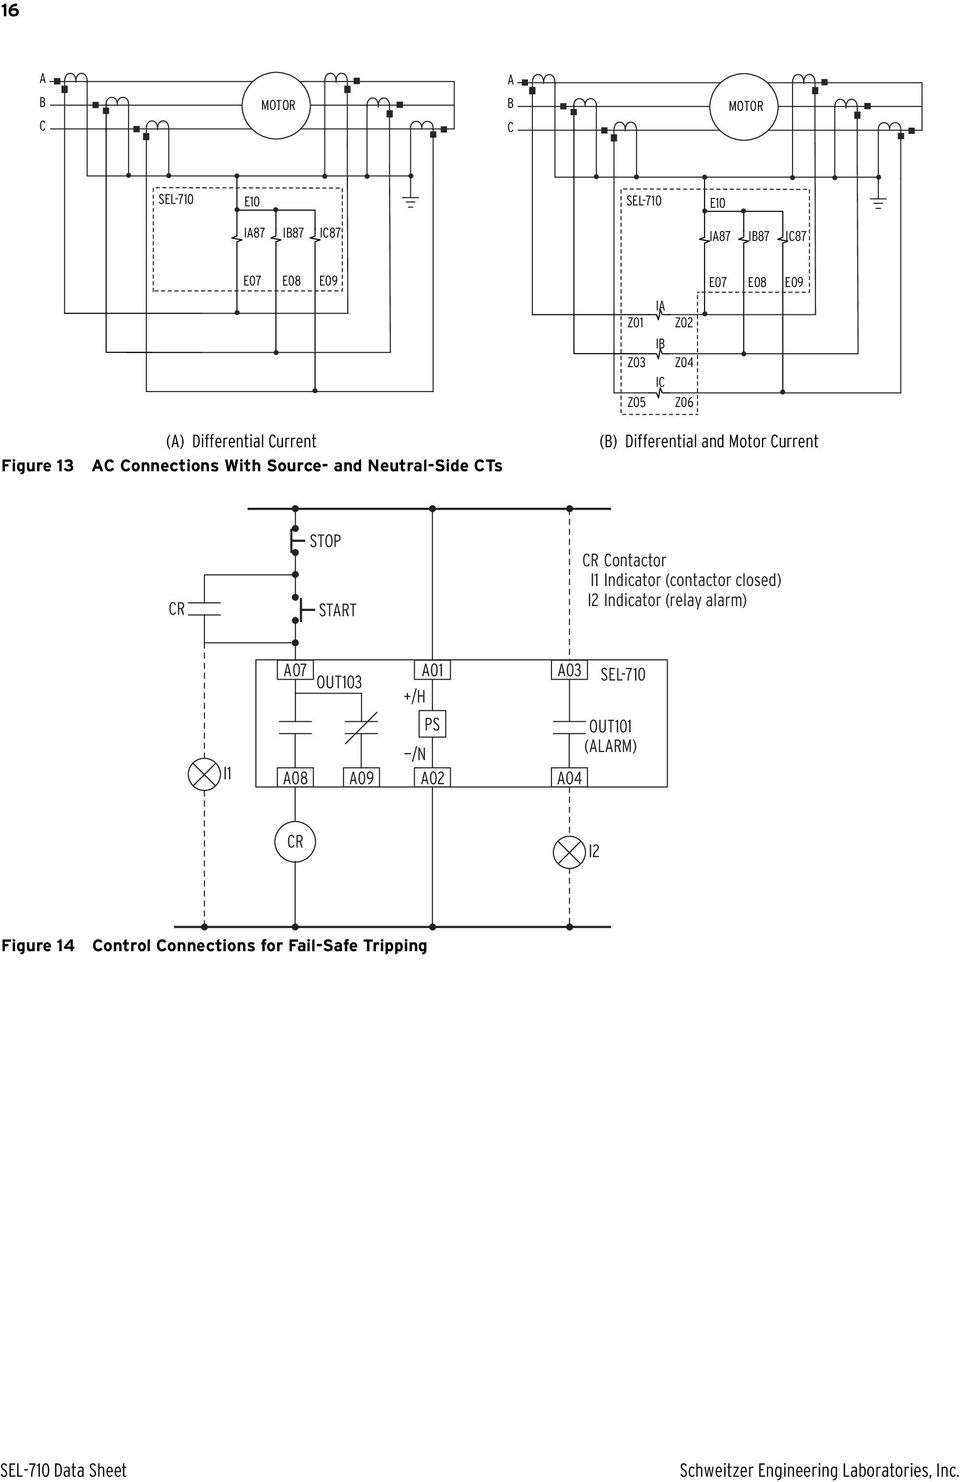 Sel 710 Motor Protection Relay Pdf Current Start Differential And Cr Stop Contactor I1 Indicator Closed I2